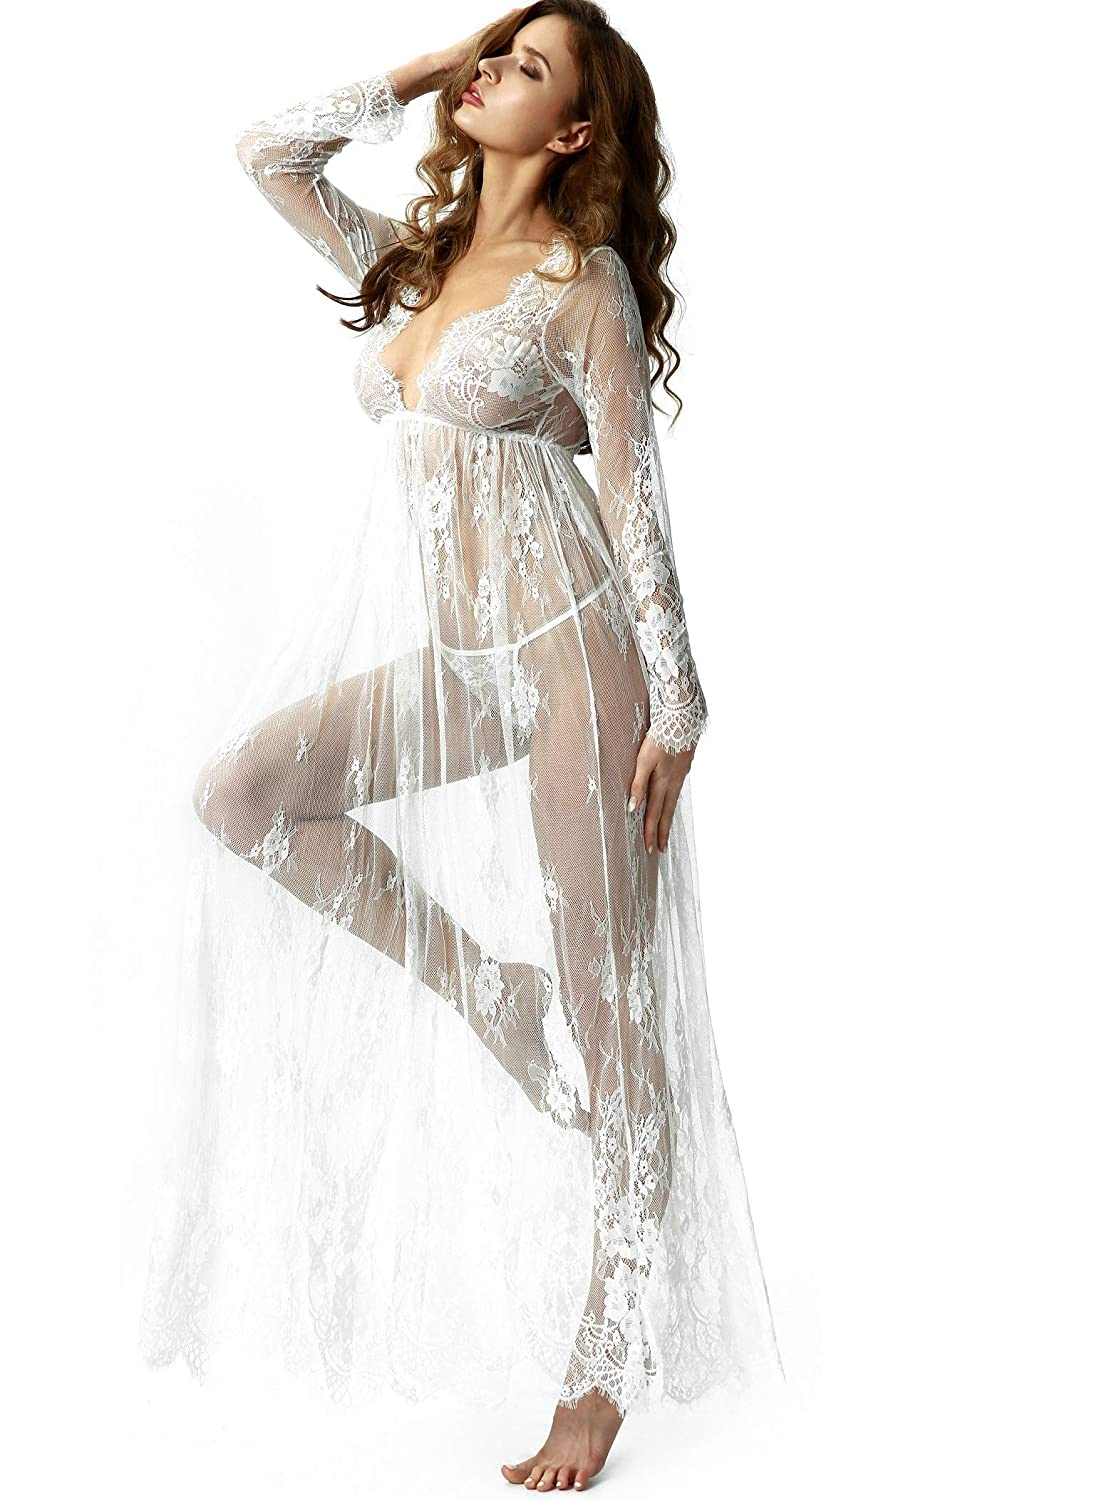 TOUSYEA Maternity Dress Sexy Sheer Long lace Dress See Through Lingerie Dress Nightgown Maxi Beach Dress